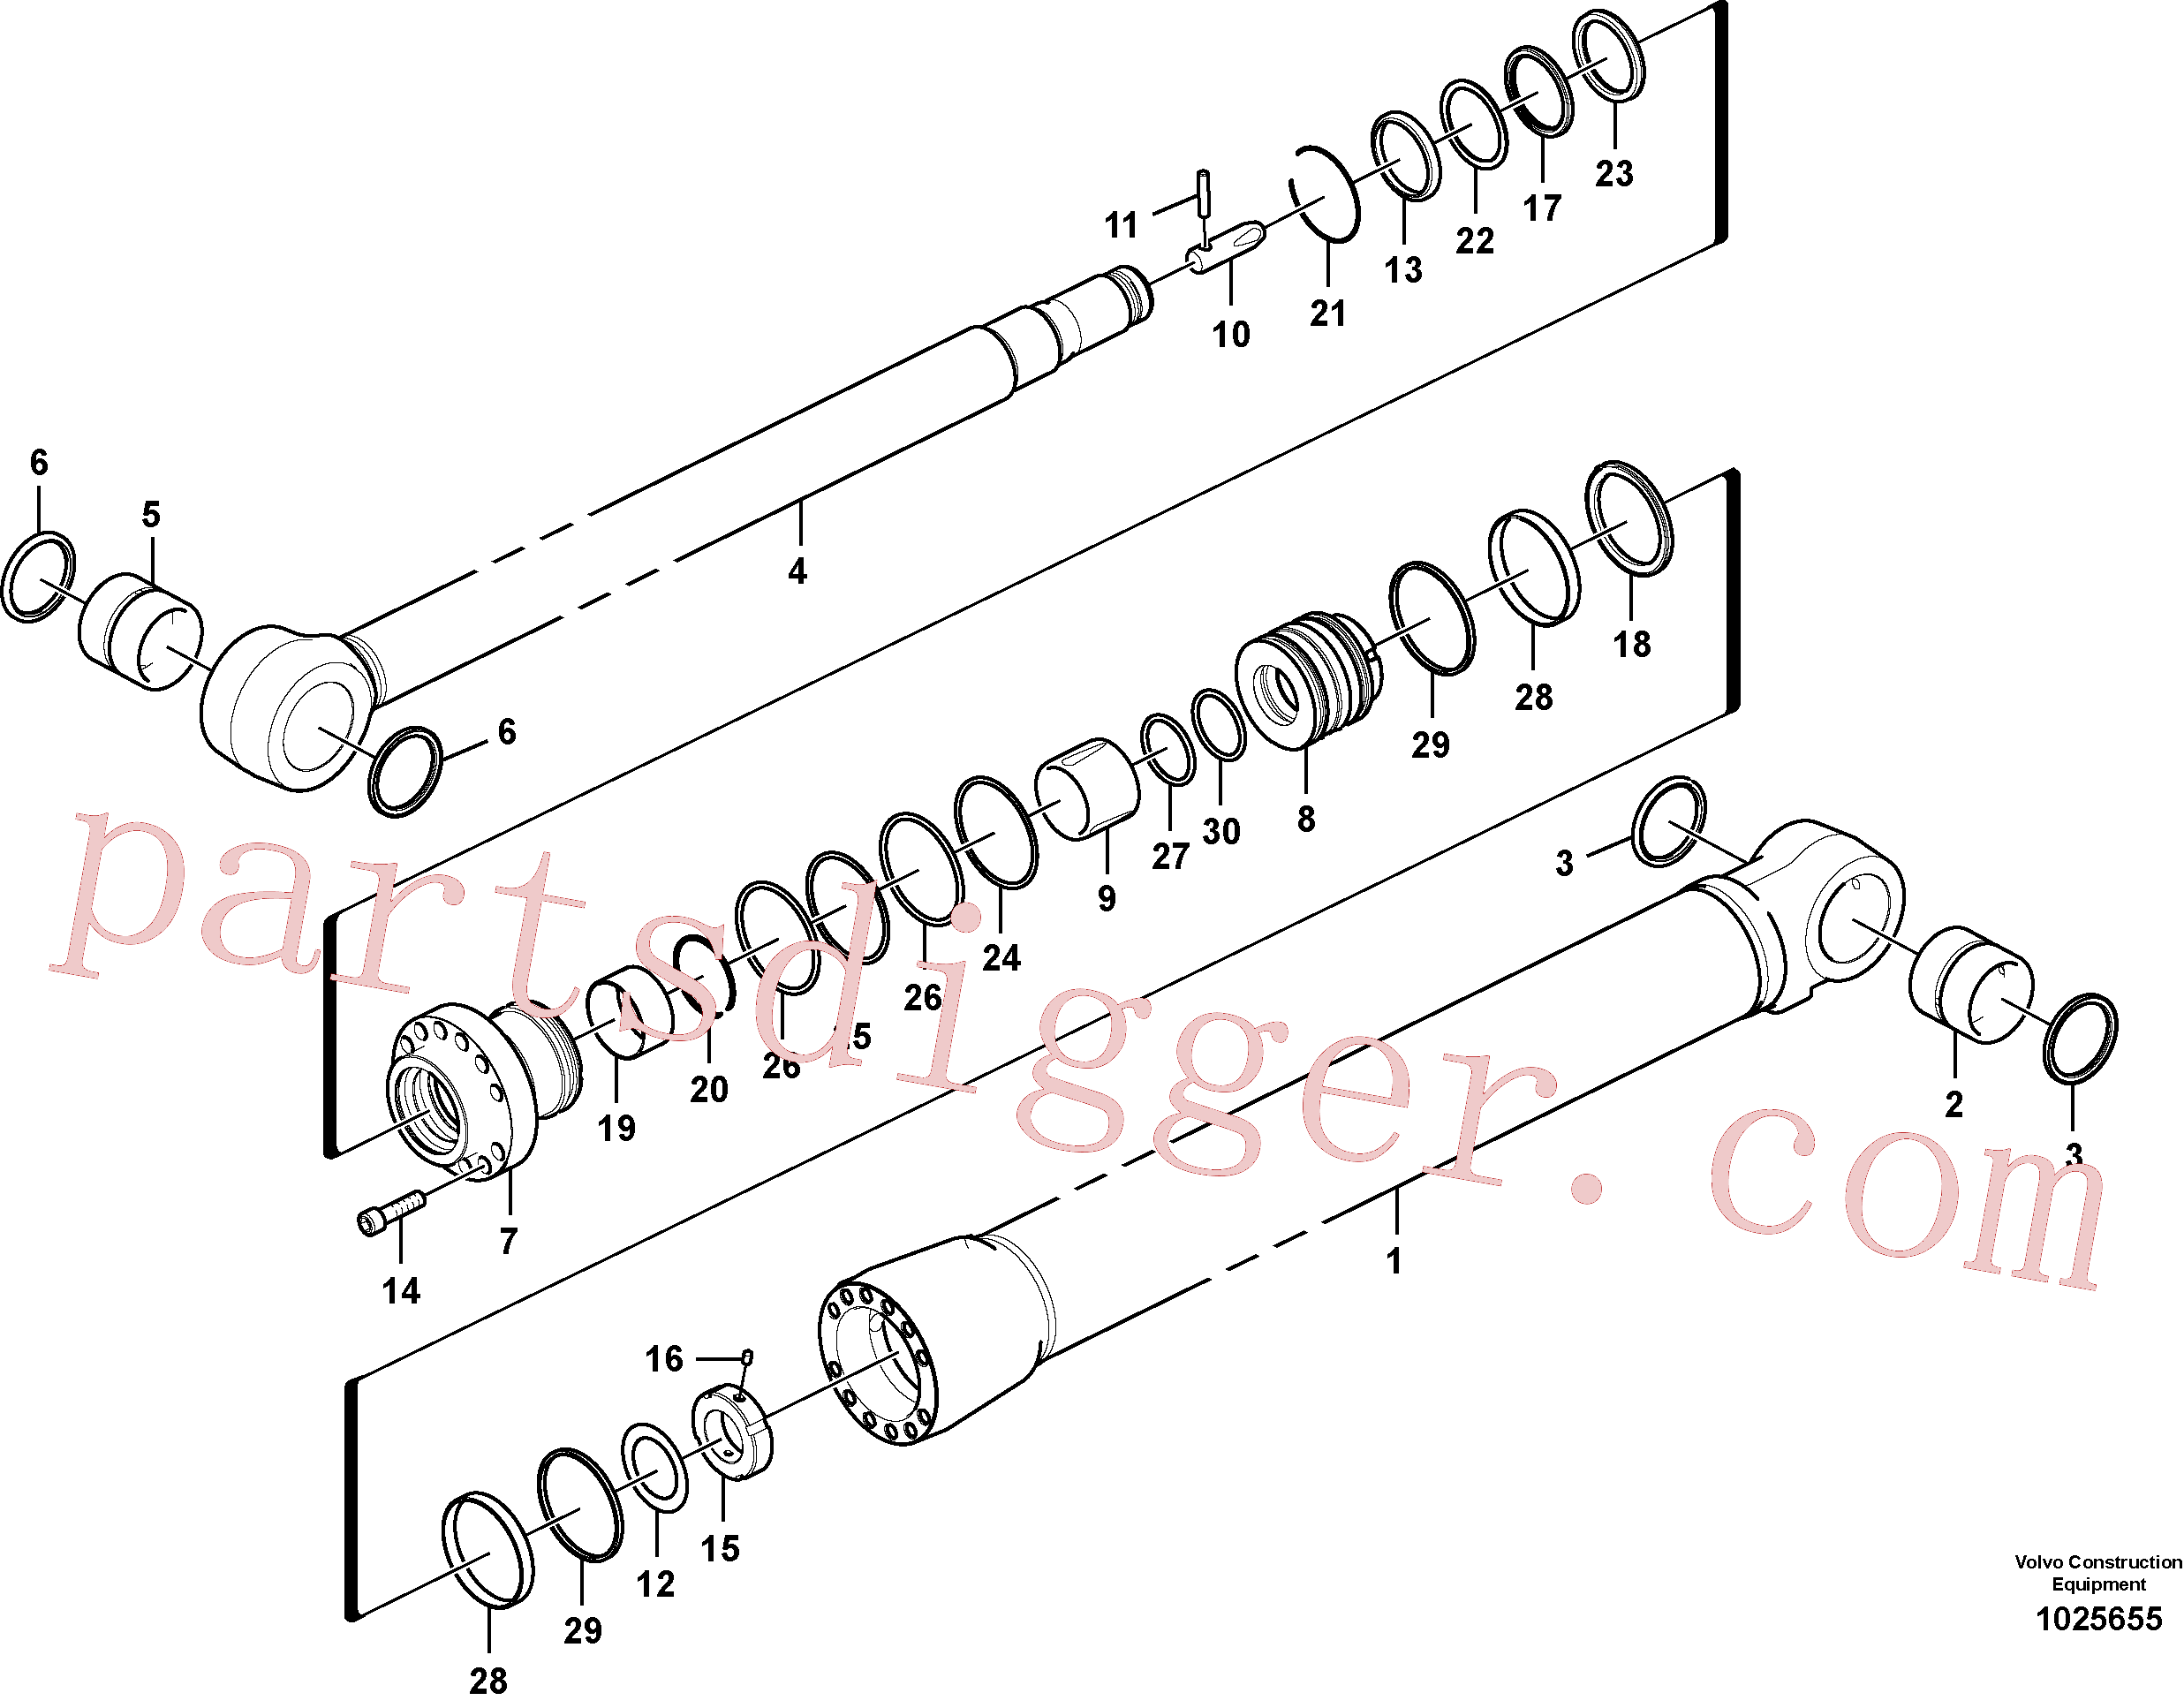 SA9568-01500 for Volvo Dipper arm cylinder(1025655 assembly)